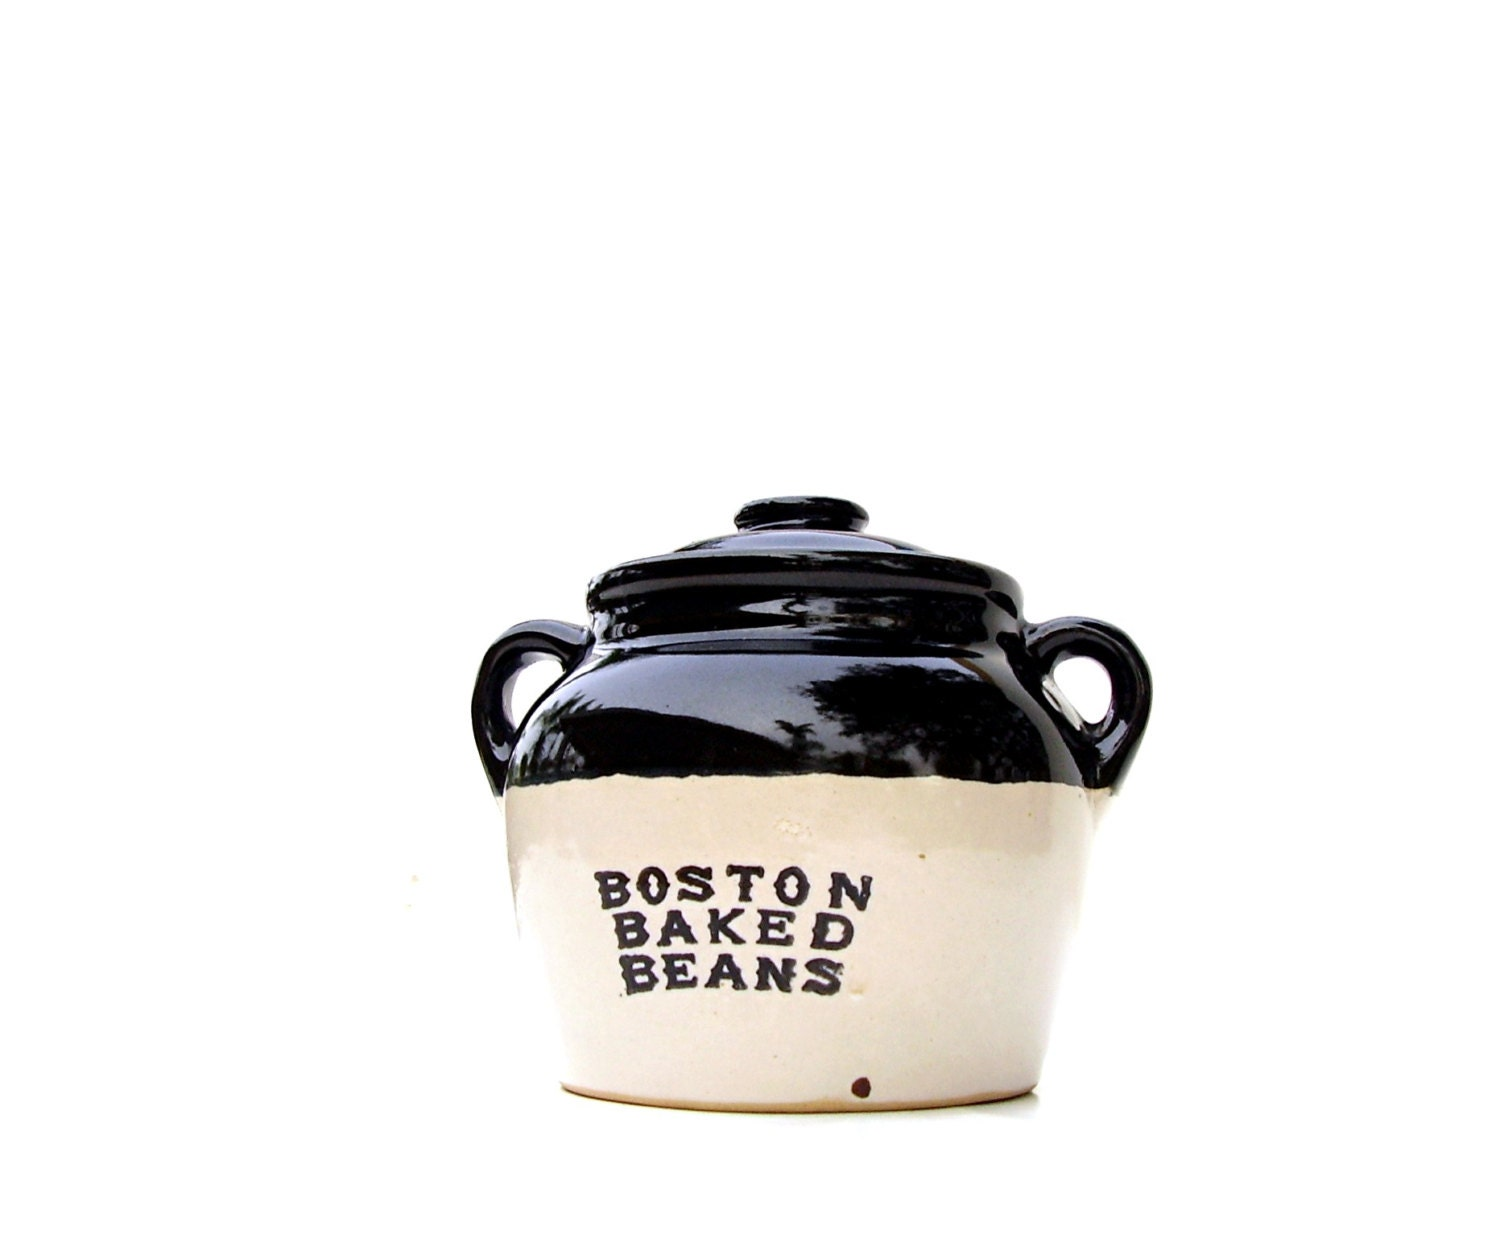 Antique Boston Baked Bean Pot Crock Usa Pottery Black Glaze